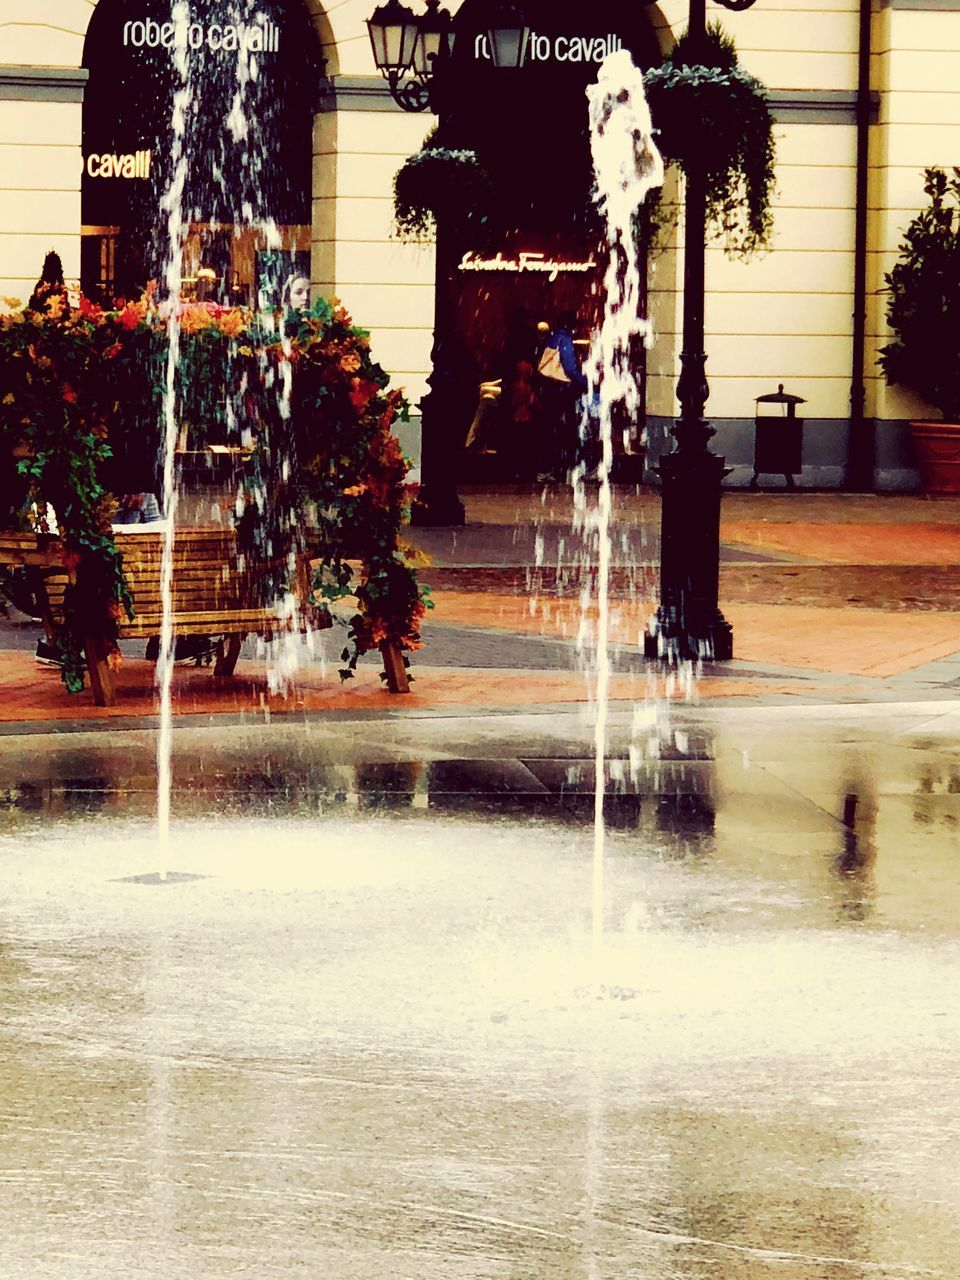 water, architecture, motion, built structure, fountain, wet, reflection, day, spraying, long exposure, nature, building exterior, outdoors, city, real people, blurred motion, incidental people, building, splashing, rain